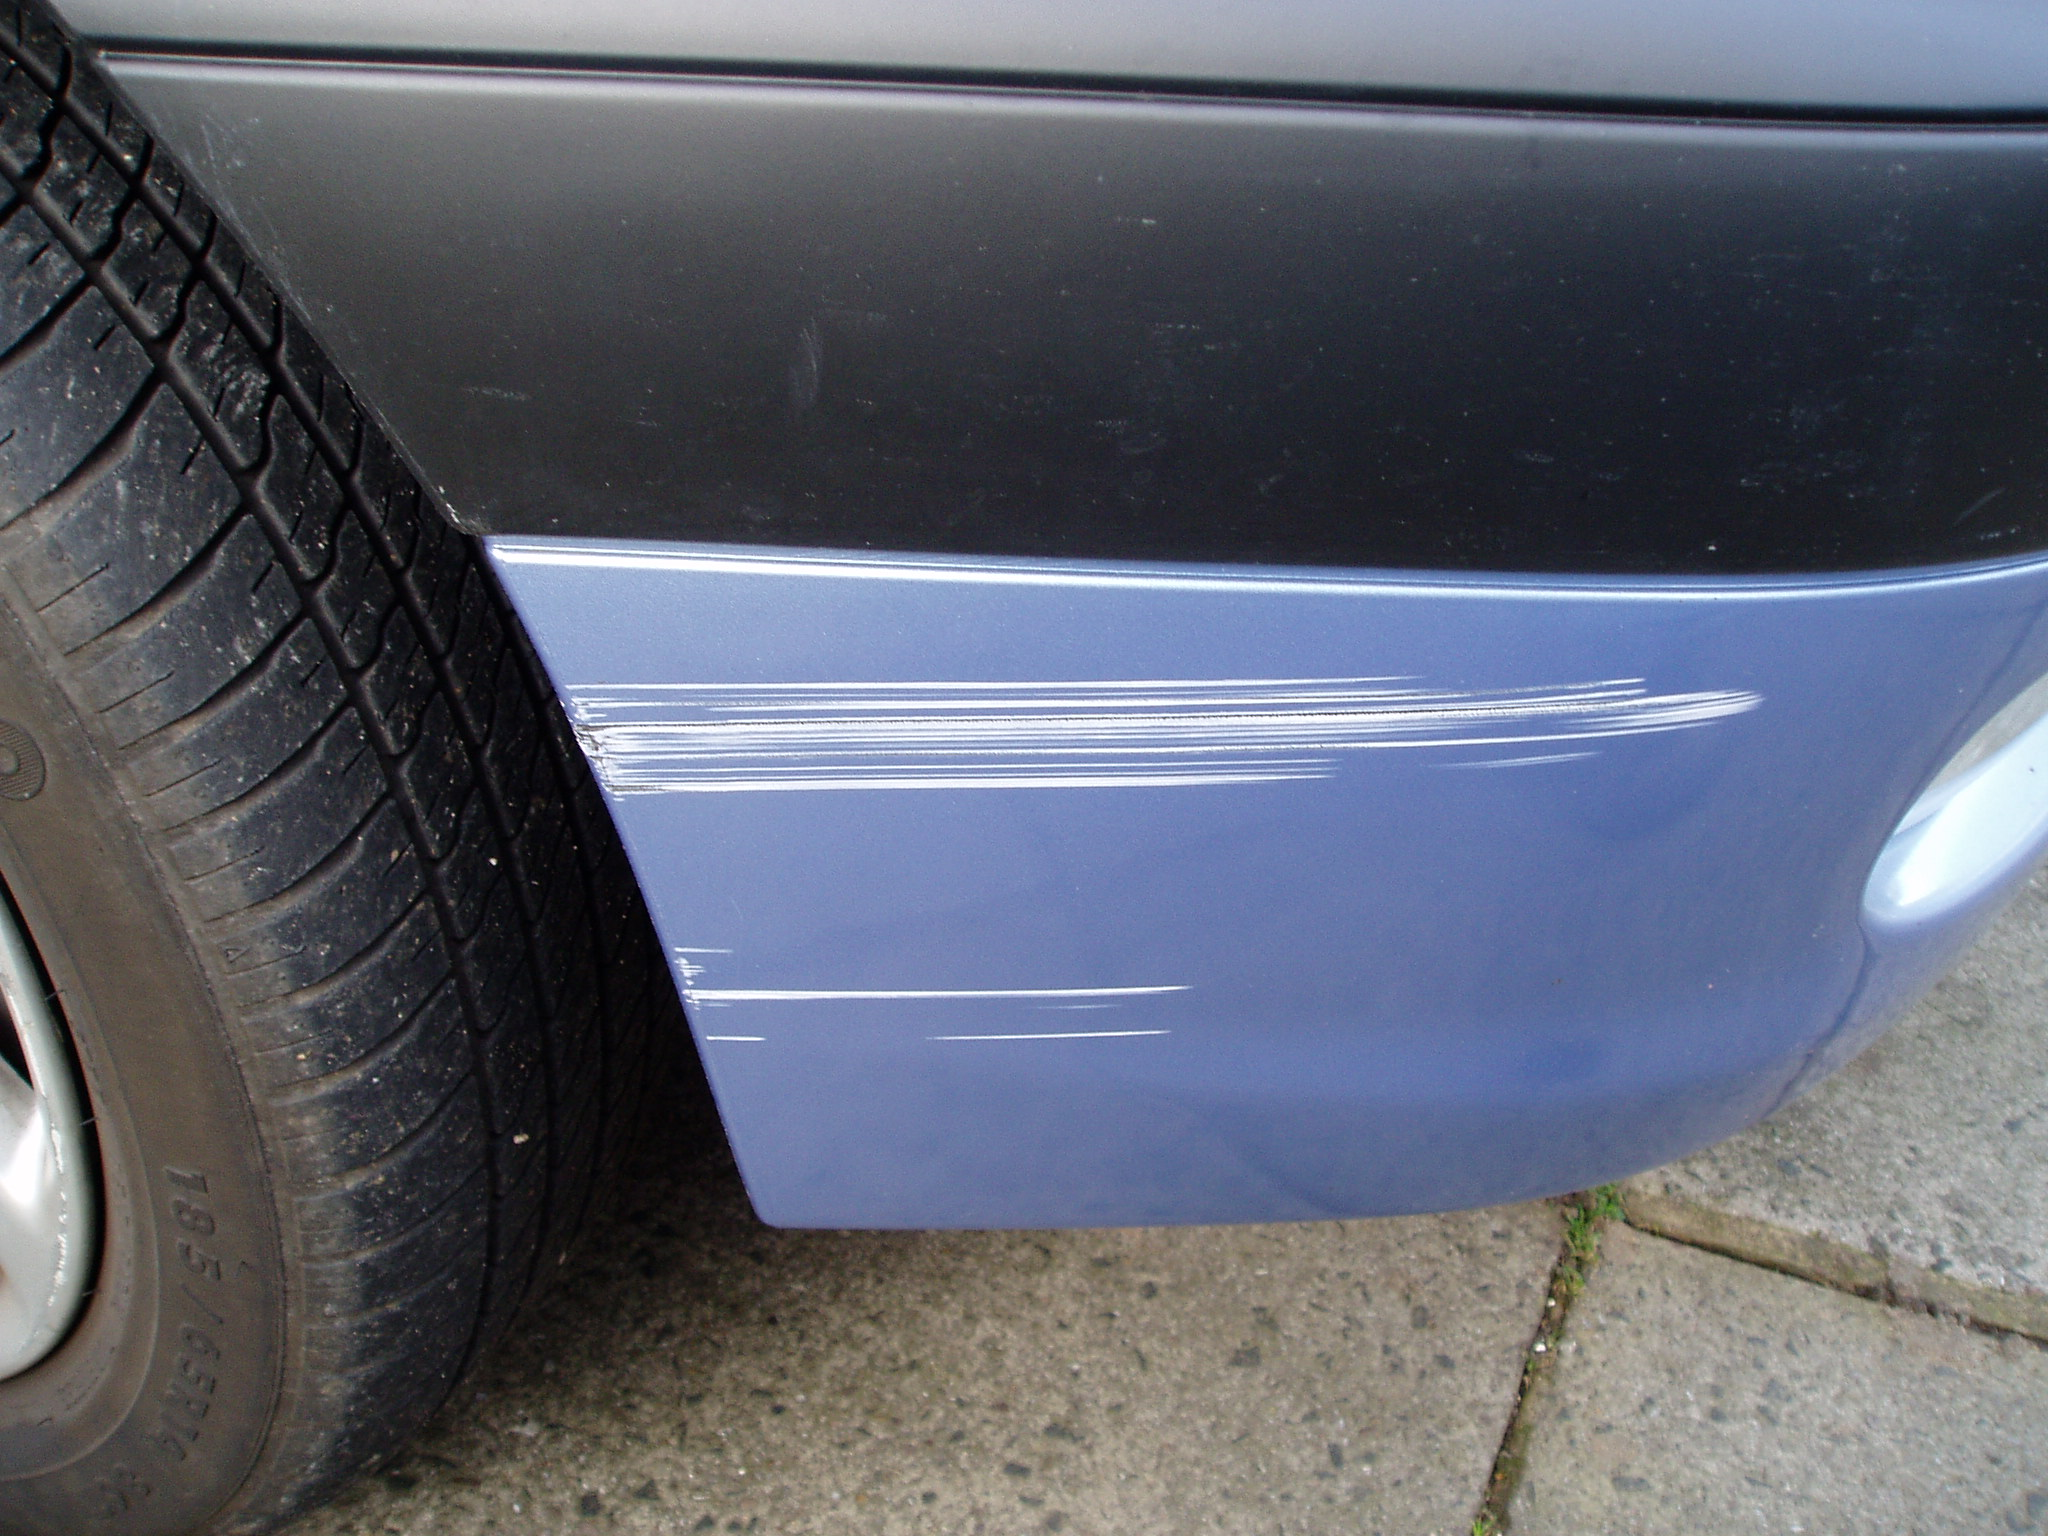 READ MORE FOR BUMPER SCUFF REPAIRS IN THE WEST MIDLANDS WE REPAIR SCRAPES SCRATCHES OR EVEN DEEP GOUGES OUT OF THE PAINTWORK ON YOUR BUMPER WE ALSO REPAIR TEXTURED BUMPER SCUFFS OR DOOR TRIM SCUFFS BACK TO NEW CONDITION IN BIRMINGHAM,SOLIHULL WORCESTER.